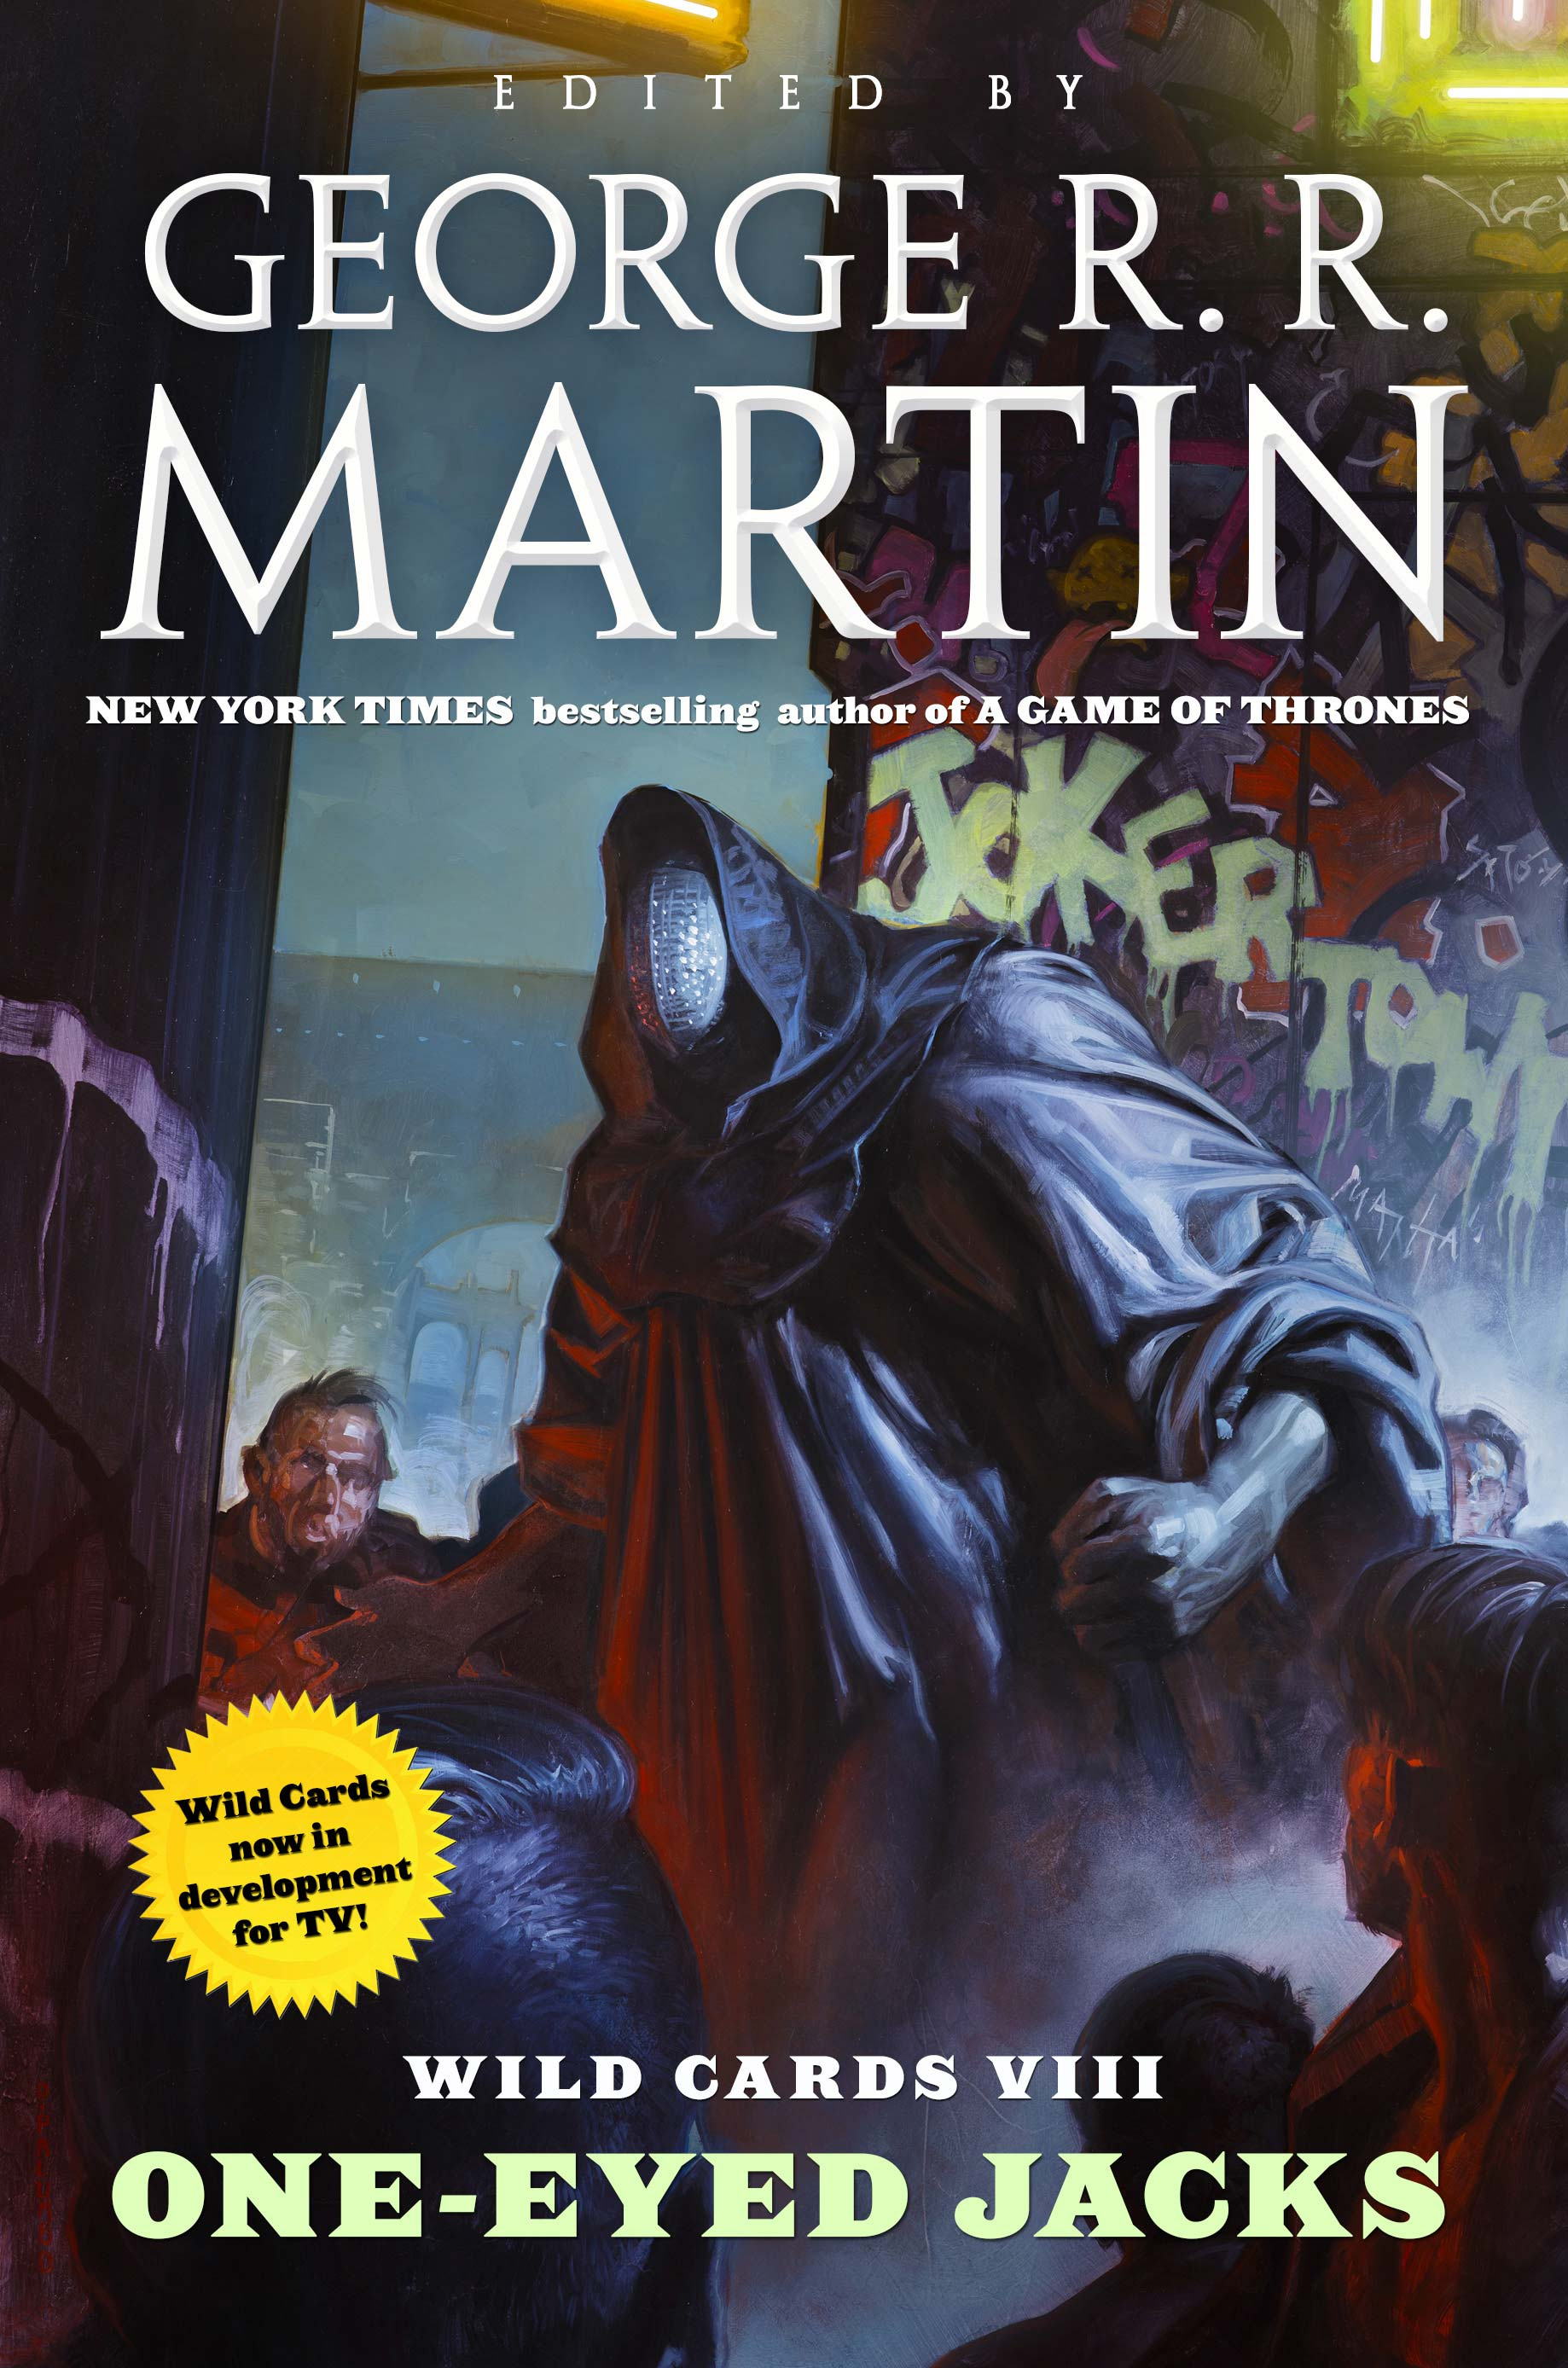 b00286495 Wild Cards - The Guide to George R.R. Martin s Wild Cards Series